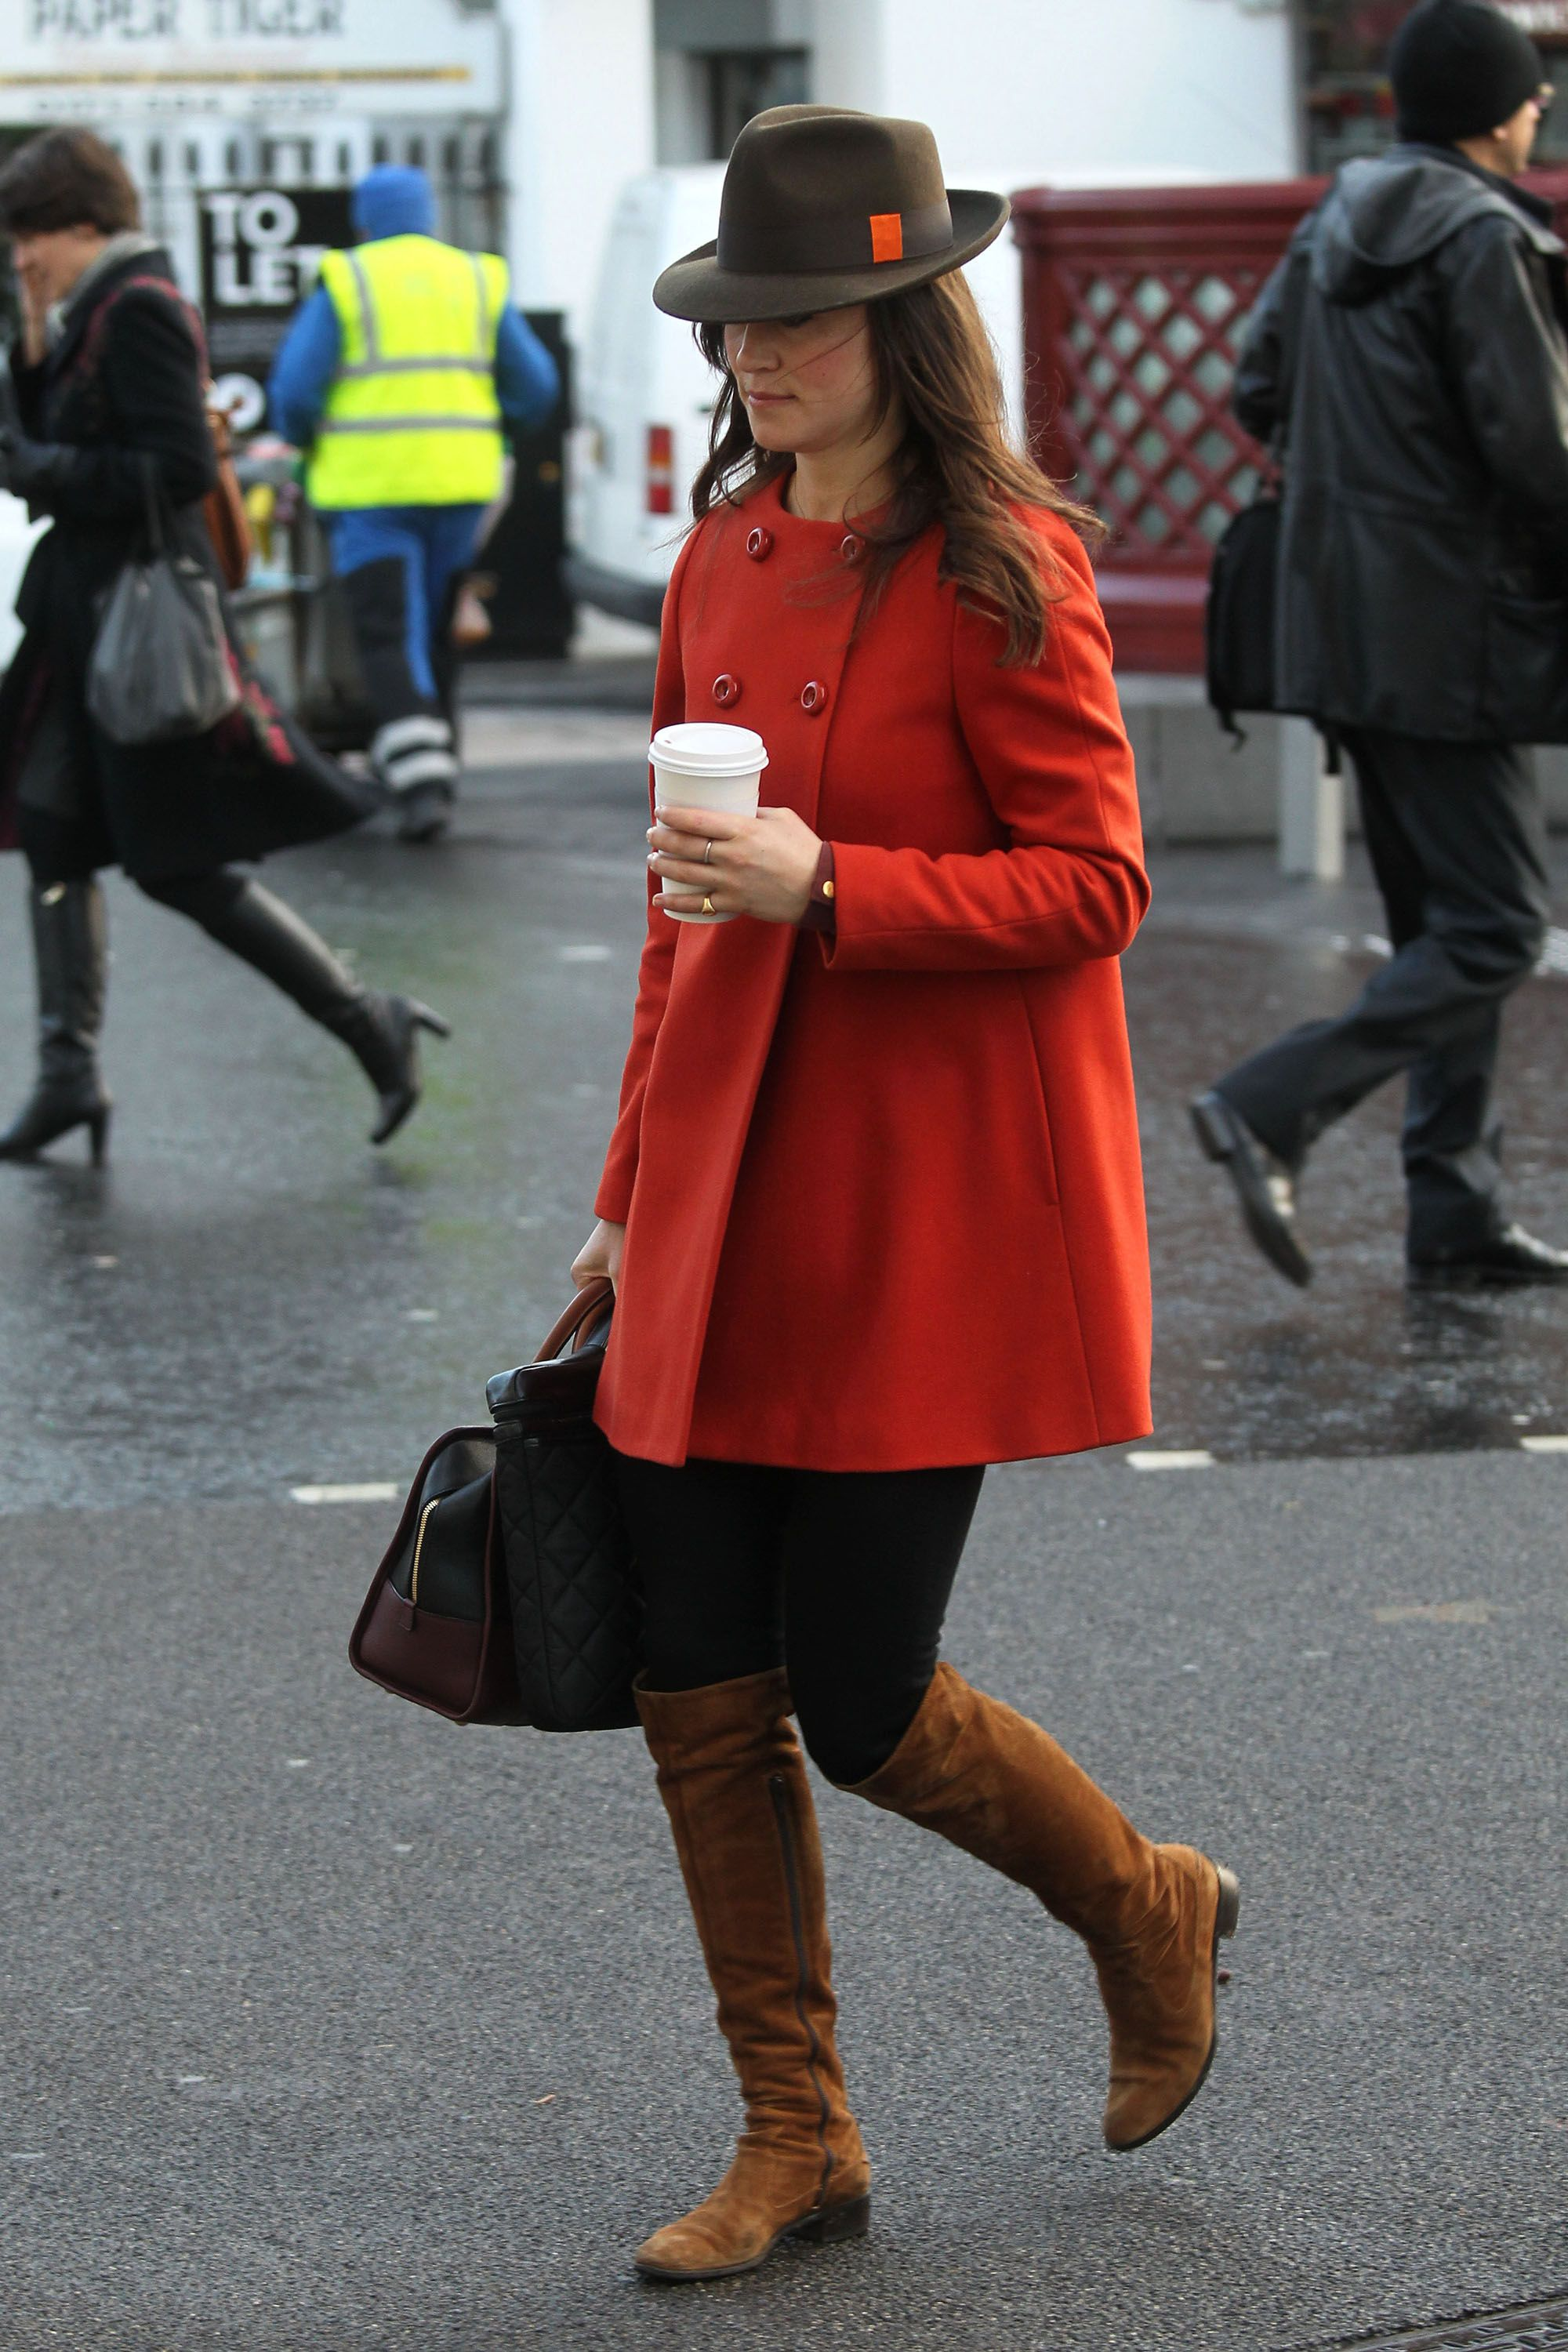 Hat Get Get Pippa Middleton Pippa TyphotosFashionBritish Middleton Pippa TyphotosFashionBritish Hat Middleton W2EIHDY9